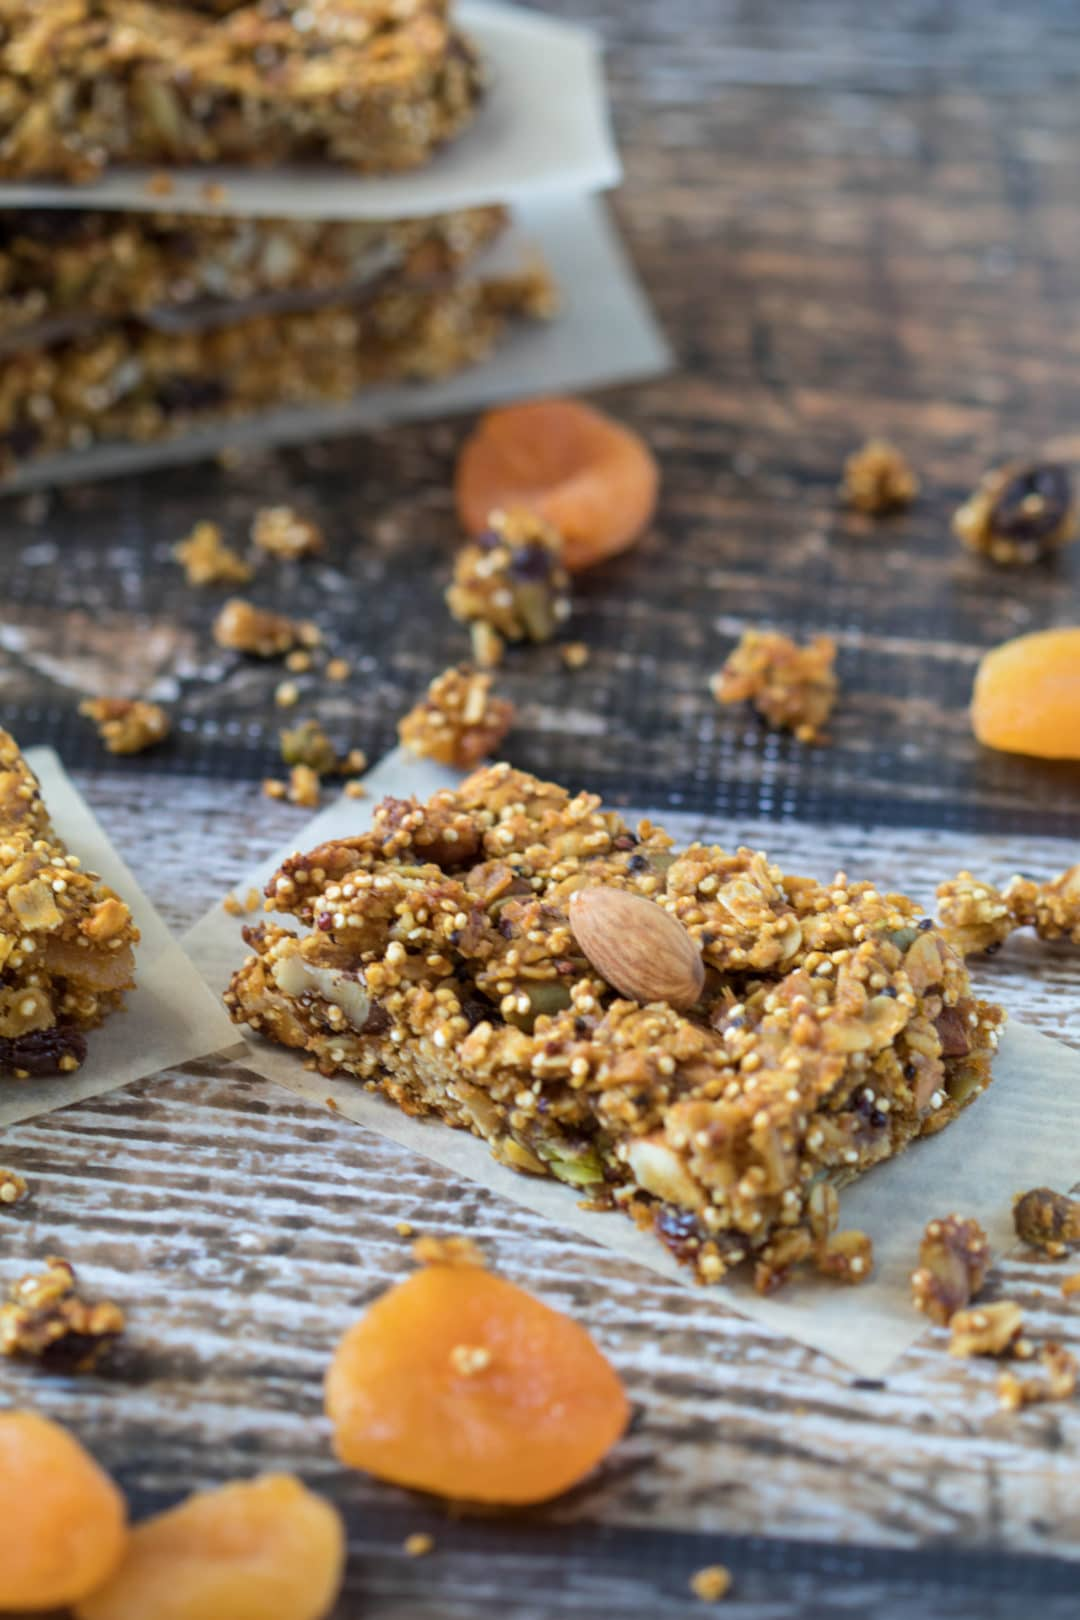 kitchen to go delta faucet cartridge breakfast bars these are a must this time of year 8 ingredient